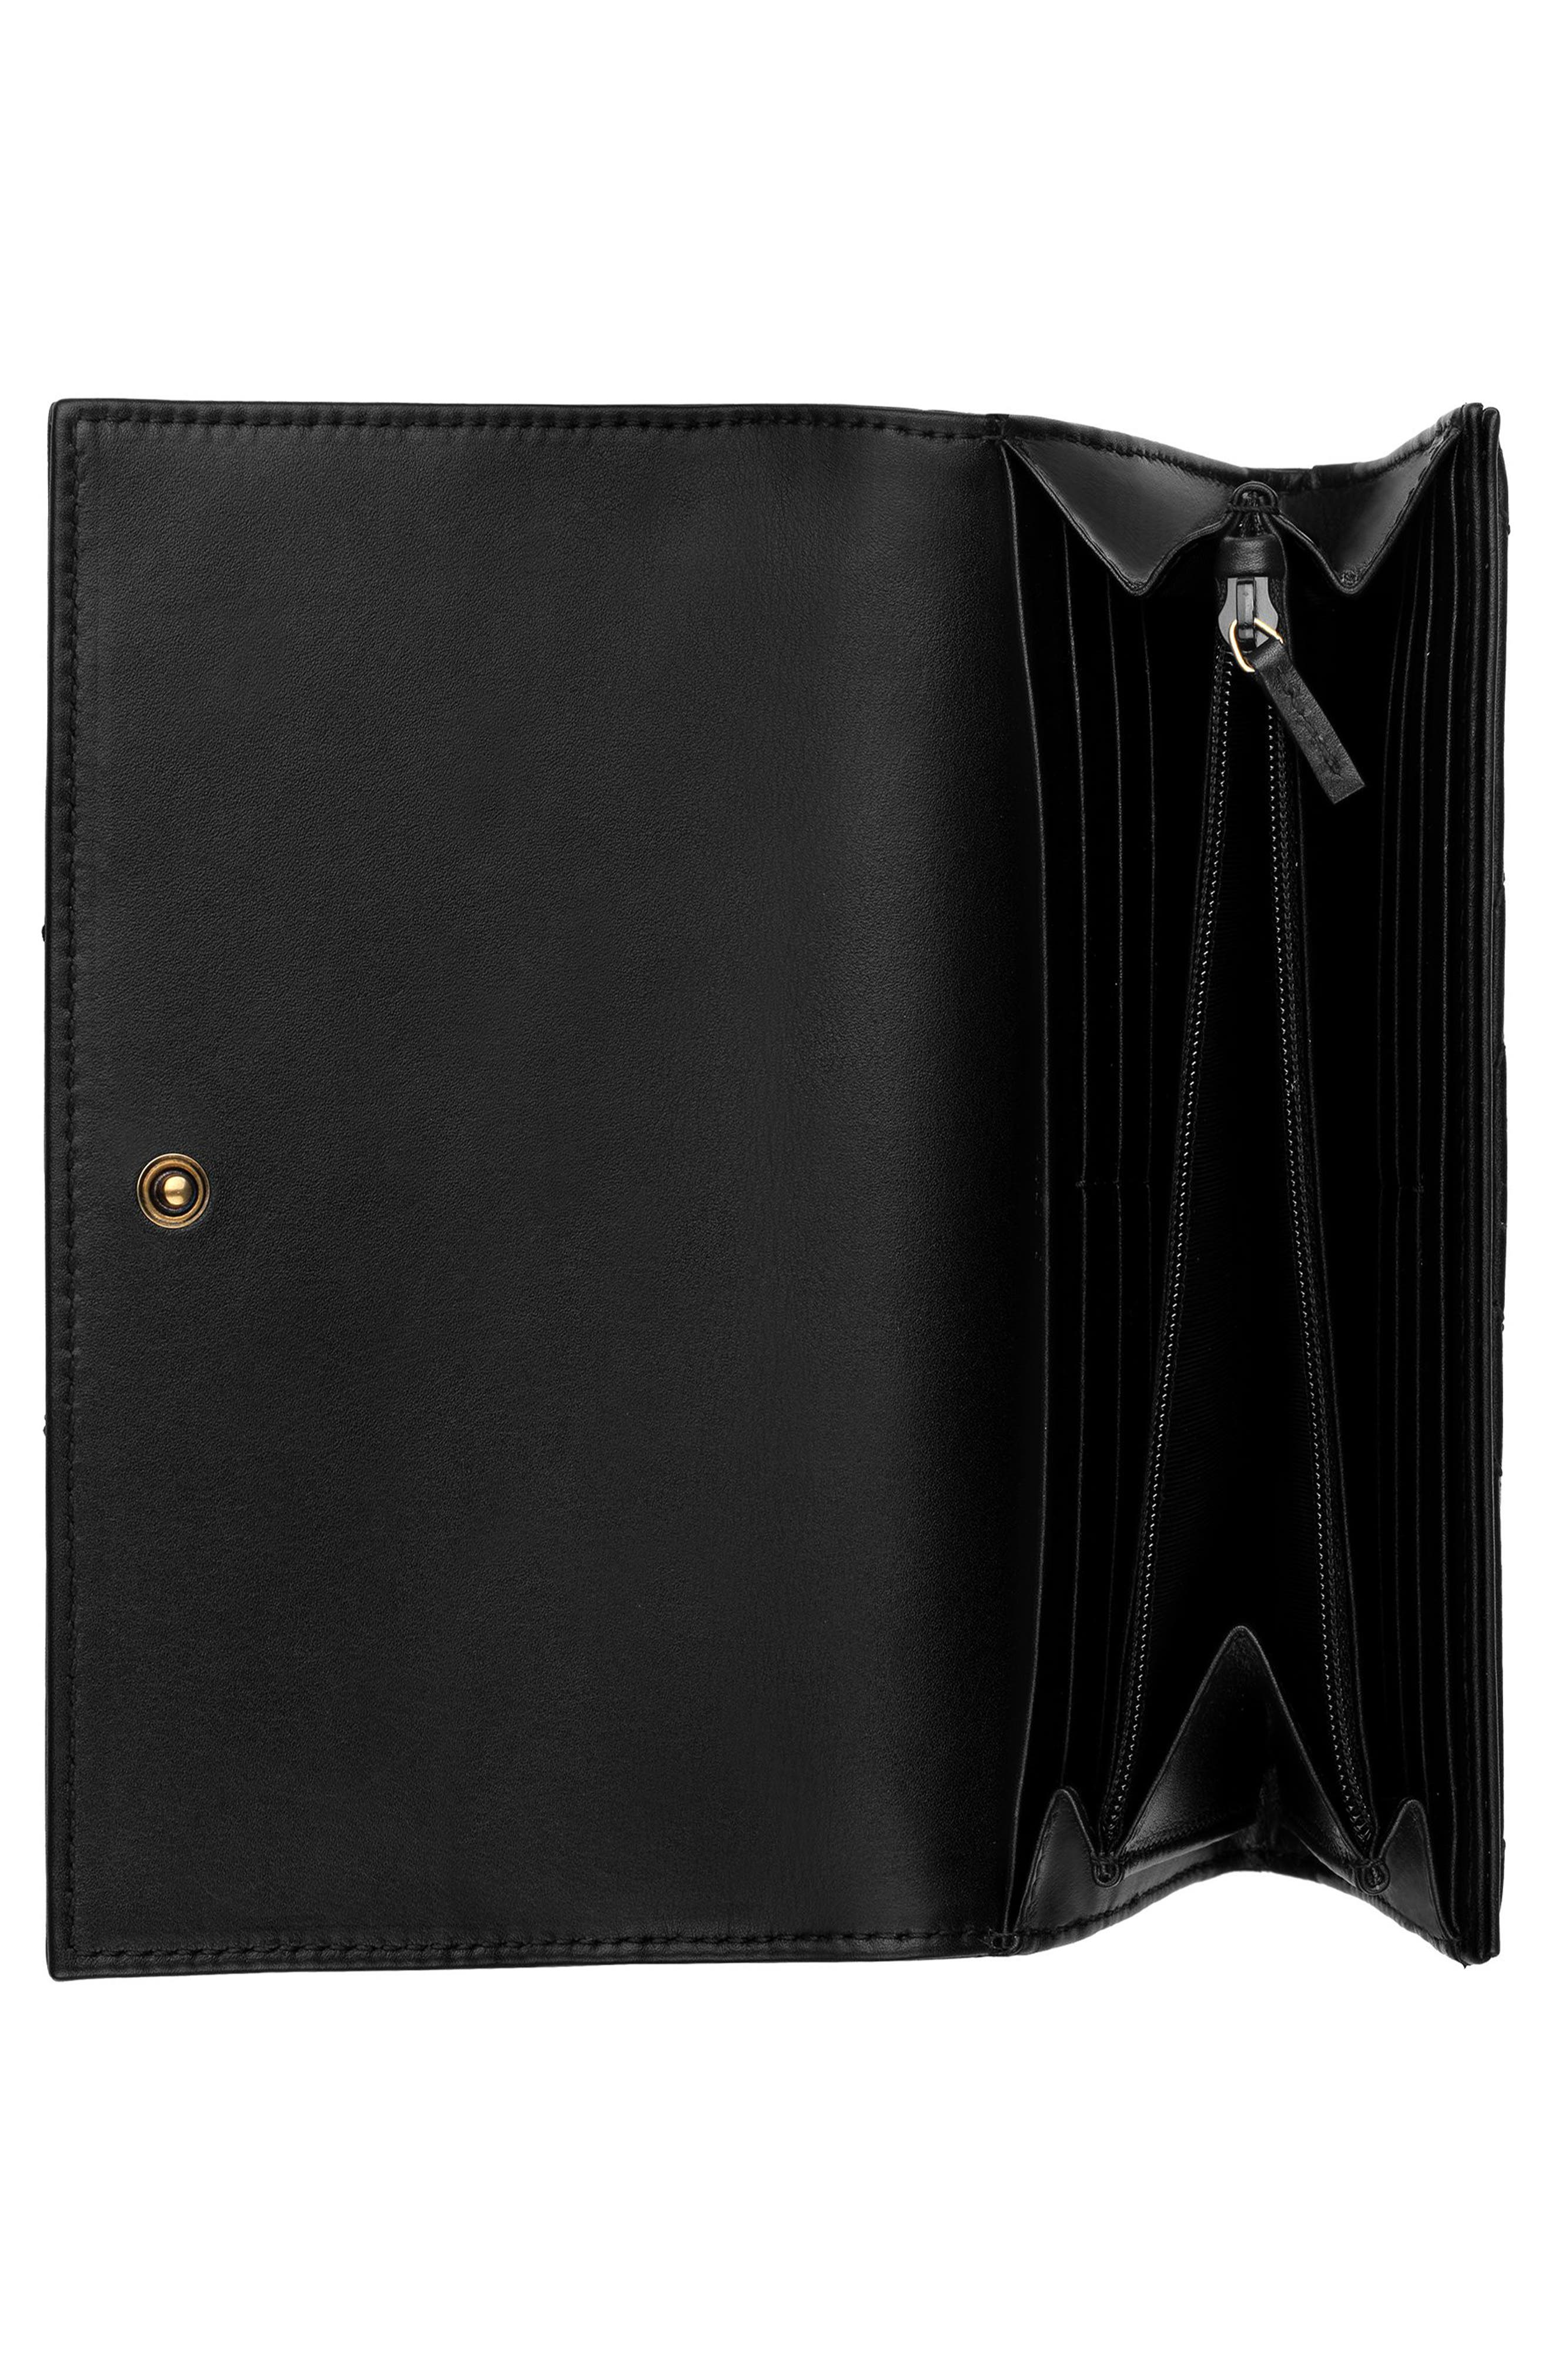 Marmont 2.0 Leather Continental Wallet,                             Alternate thumbnail 2, color,                             NERO